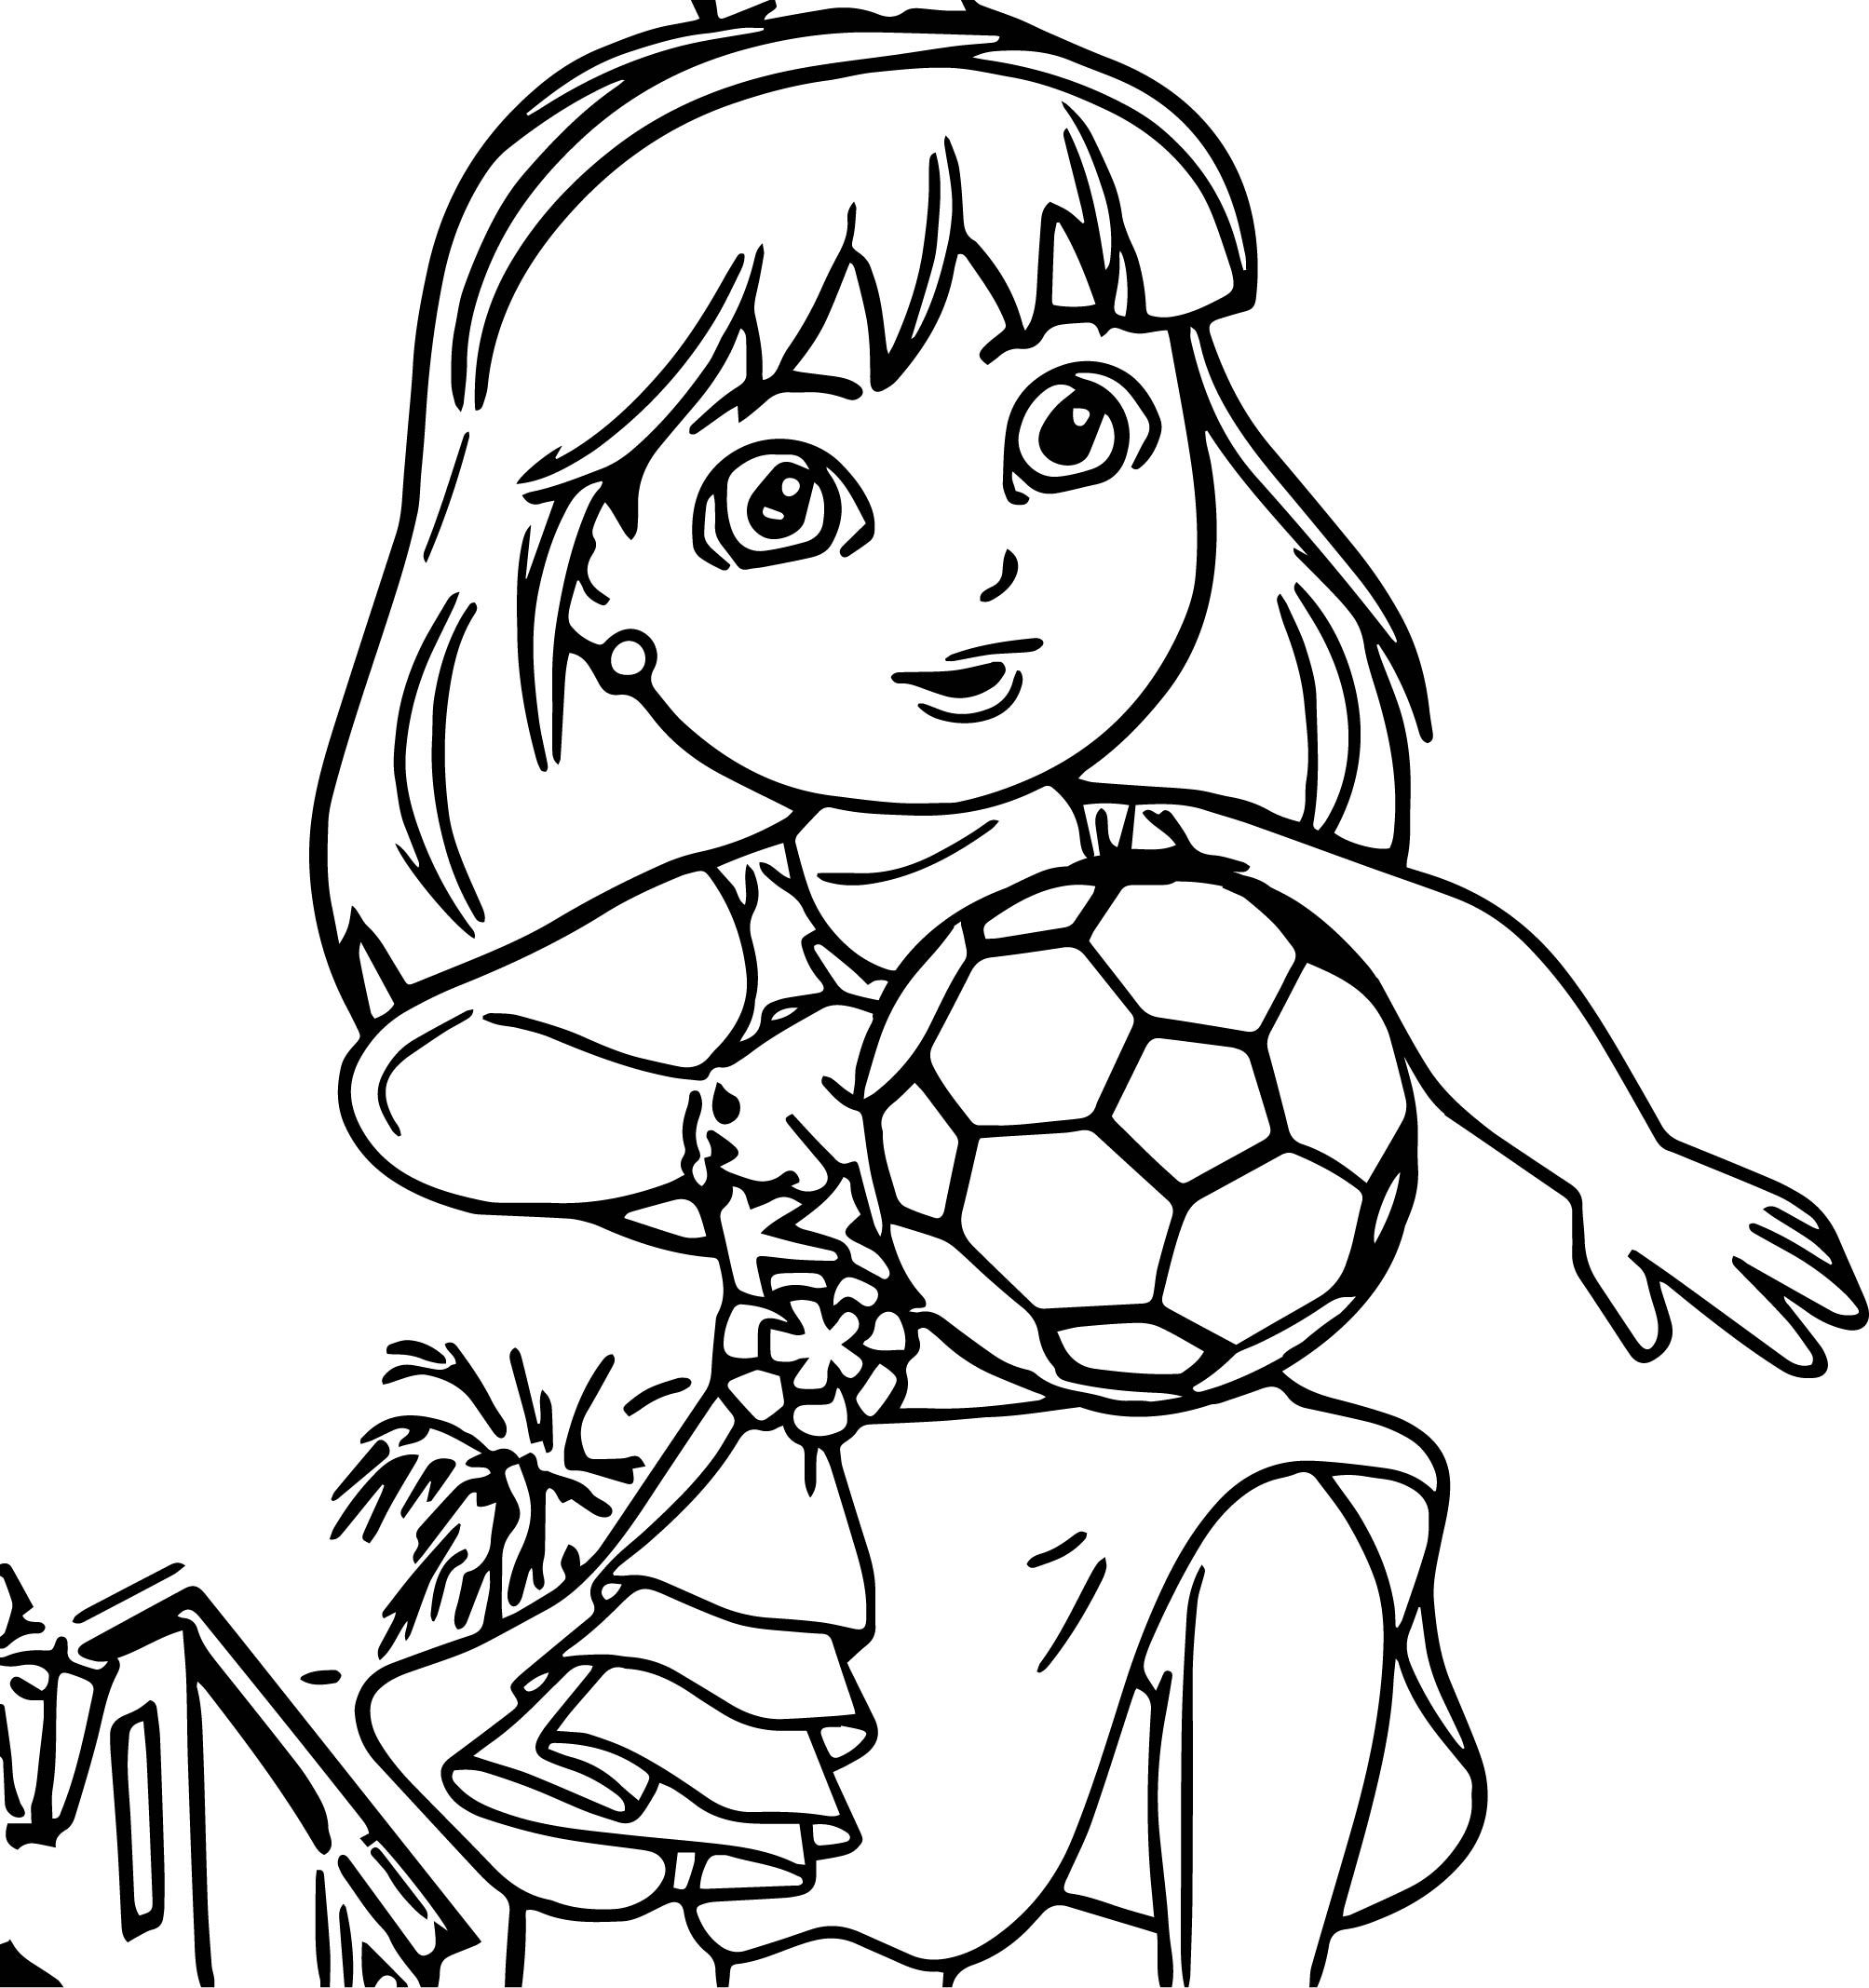 Get A Move On Dora And Friends Soccer Dance Coloring Page